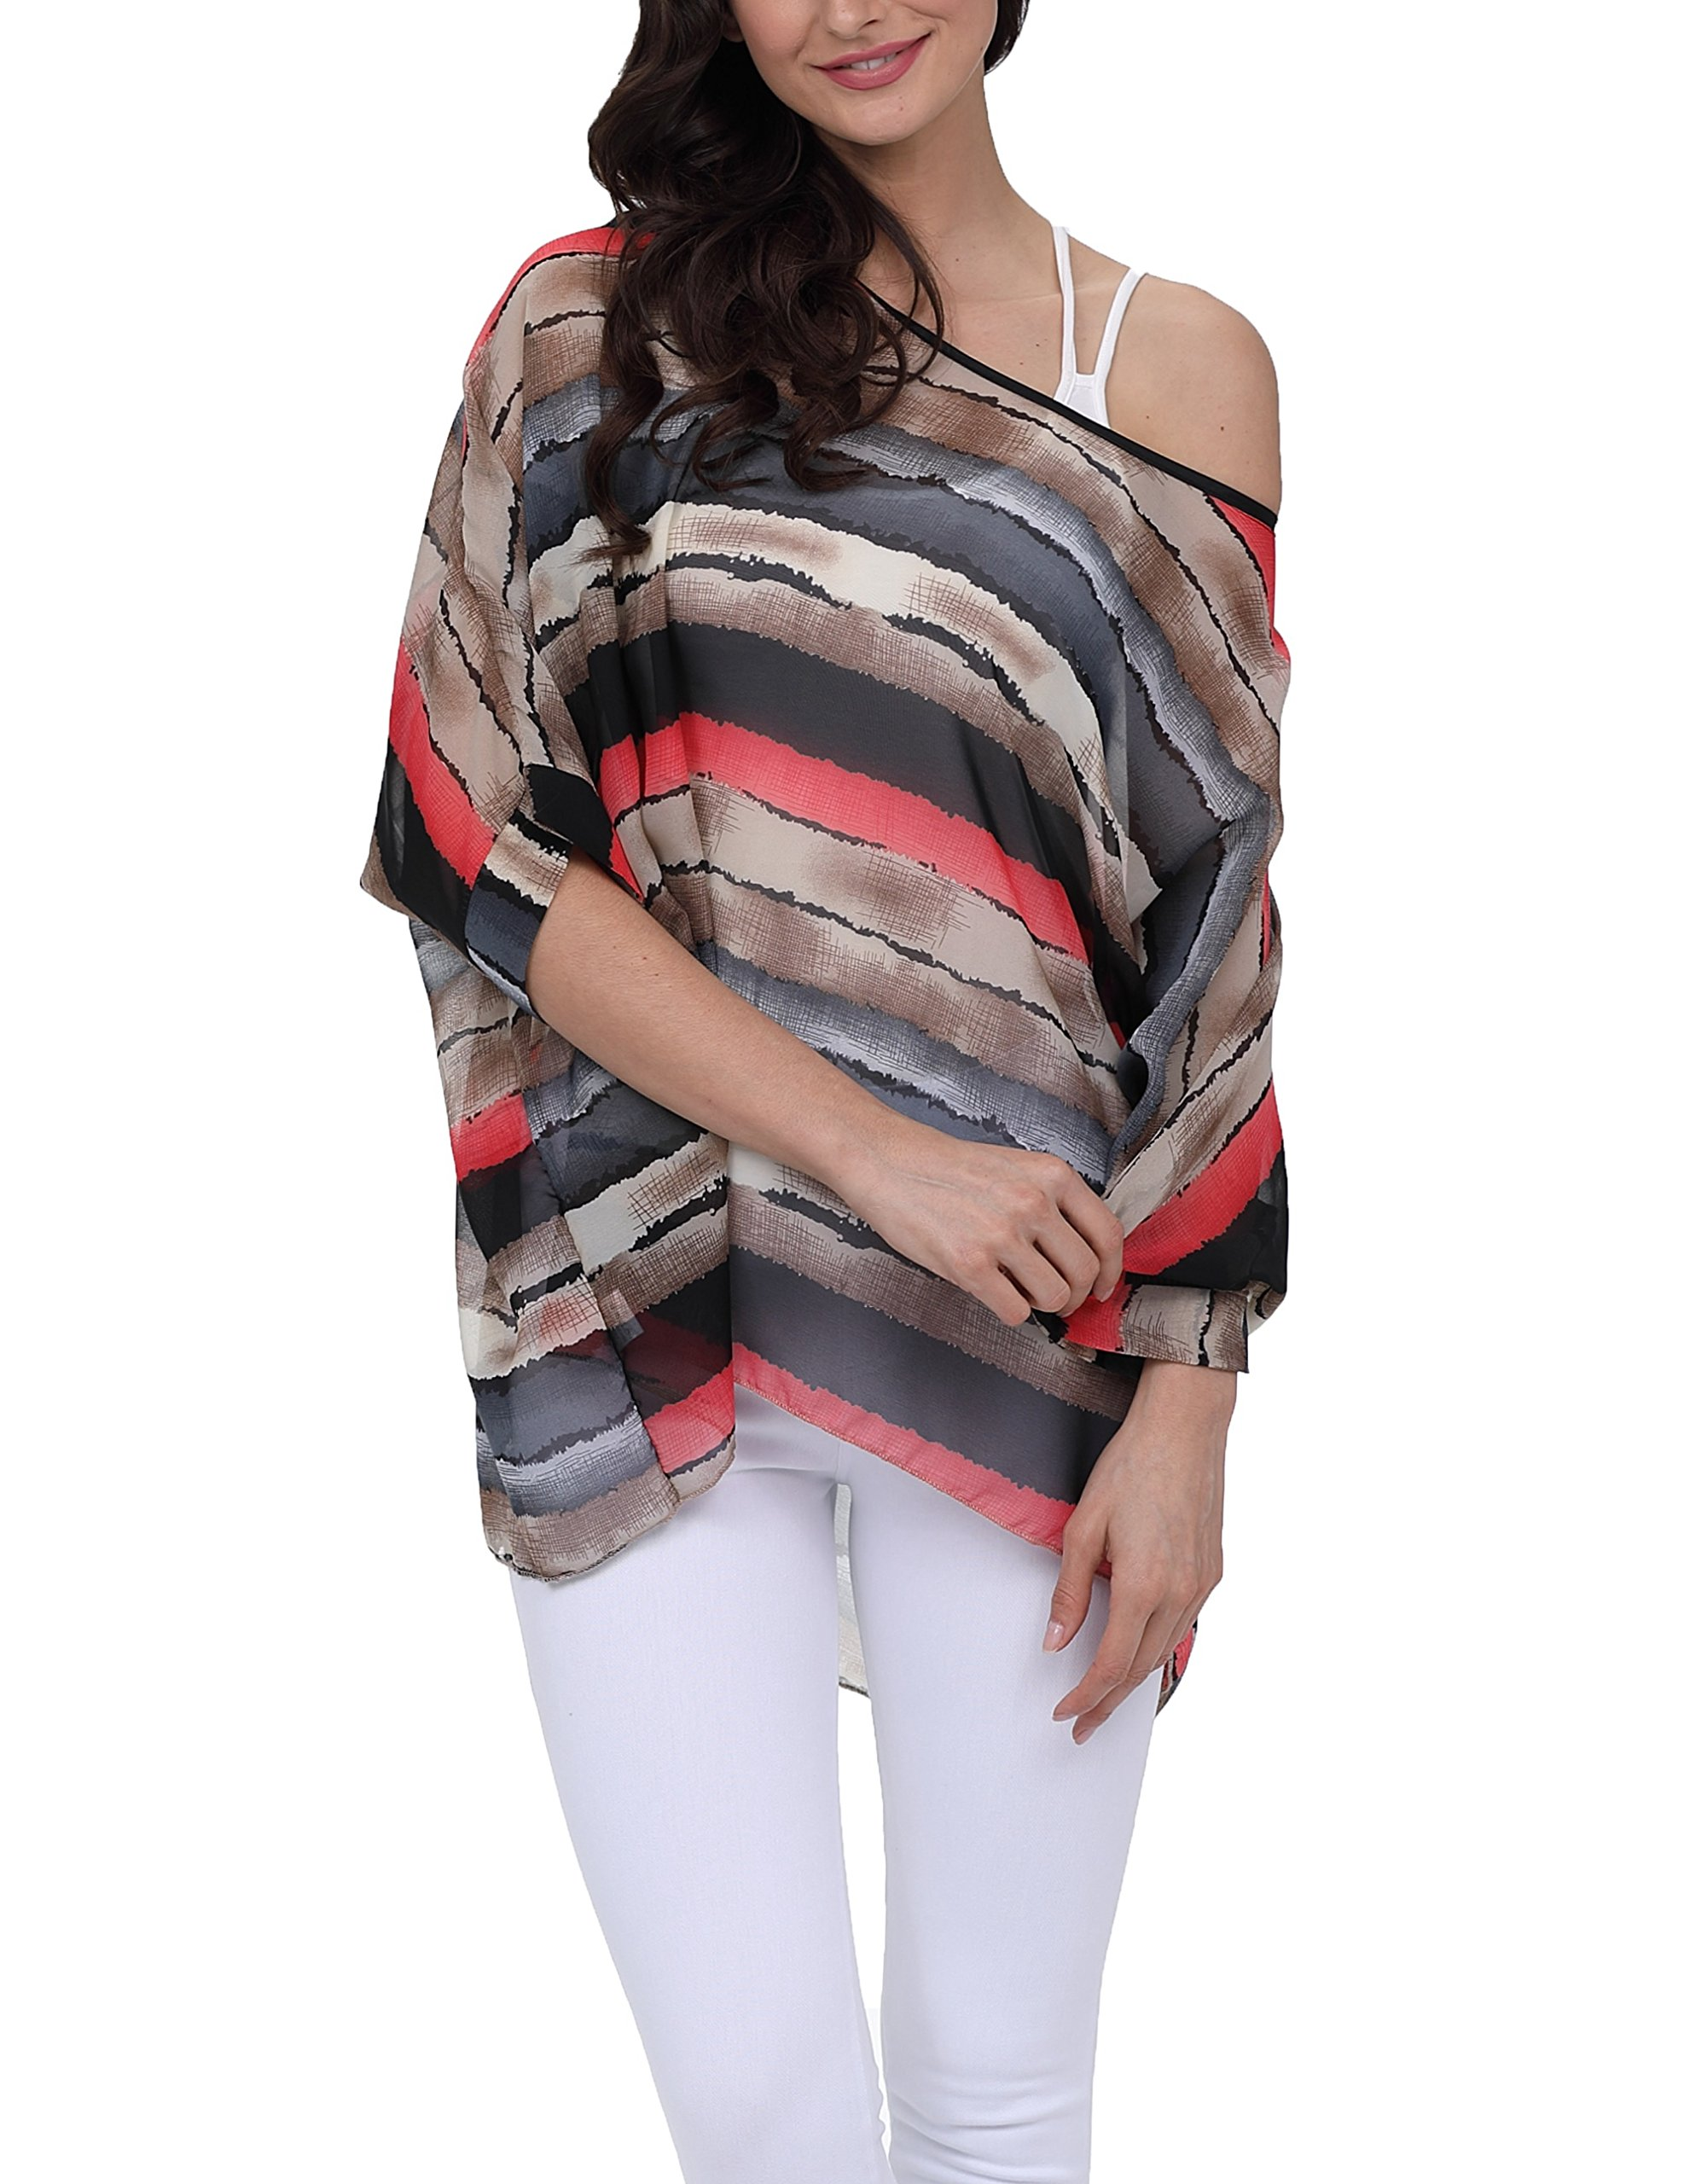 Vanbuy Women Summer Floral Printed Batwing Sleeve Top Chiffon Poncho Casual Loose Blouse Z91-4294